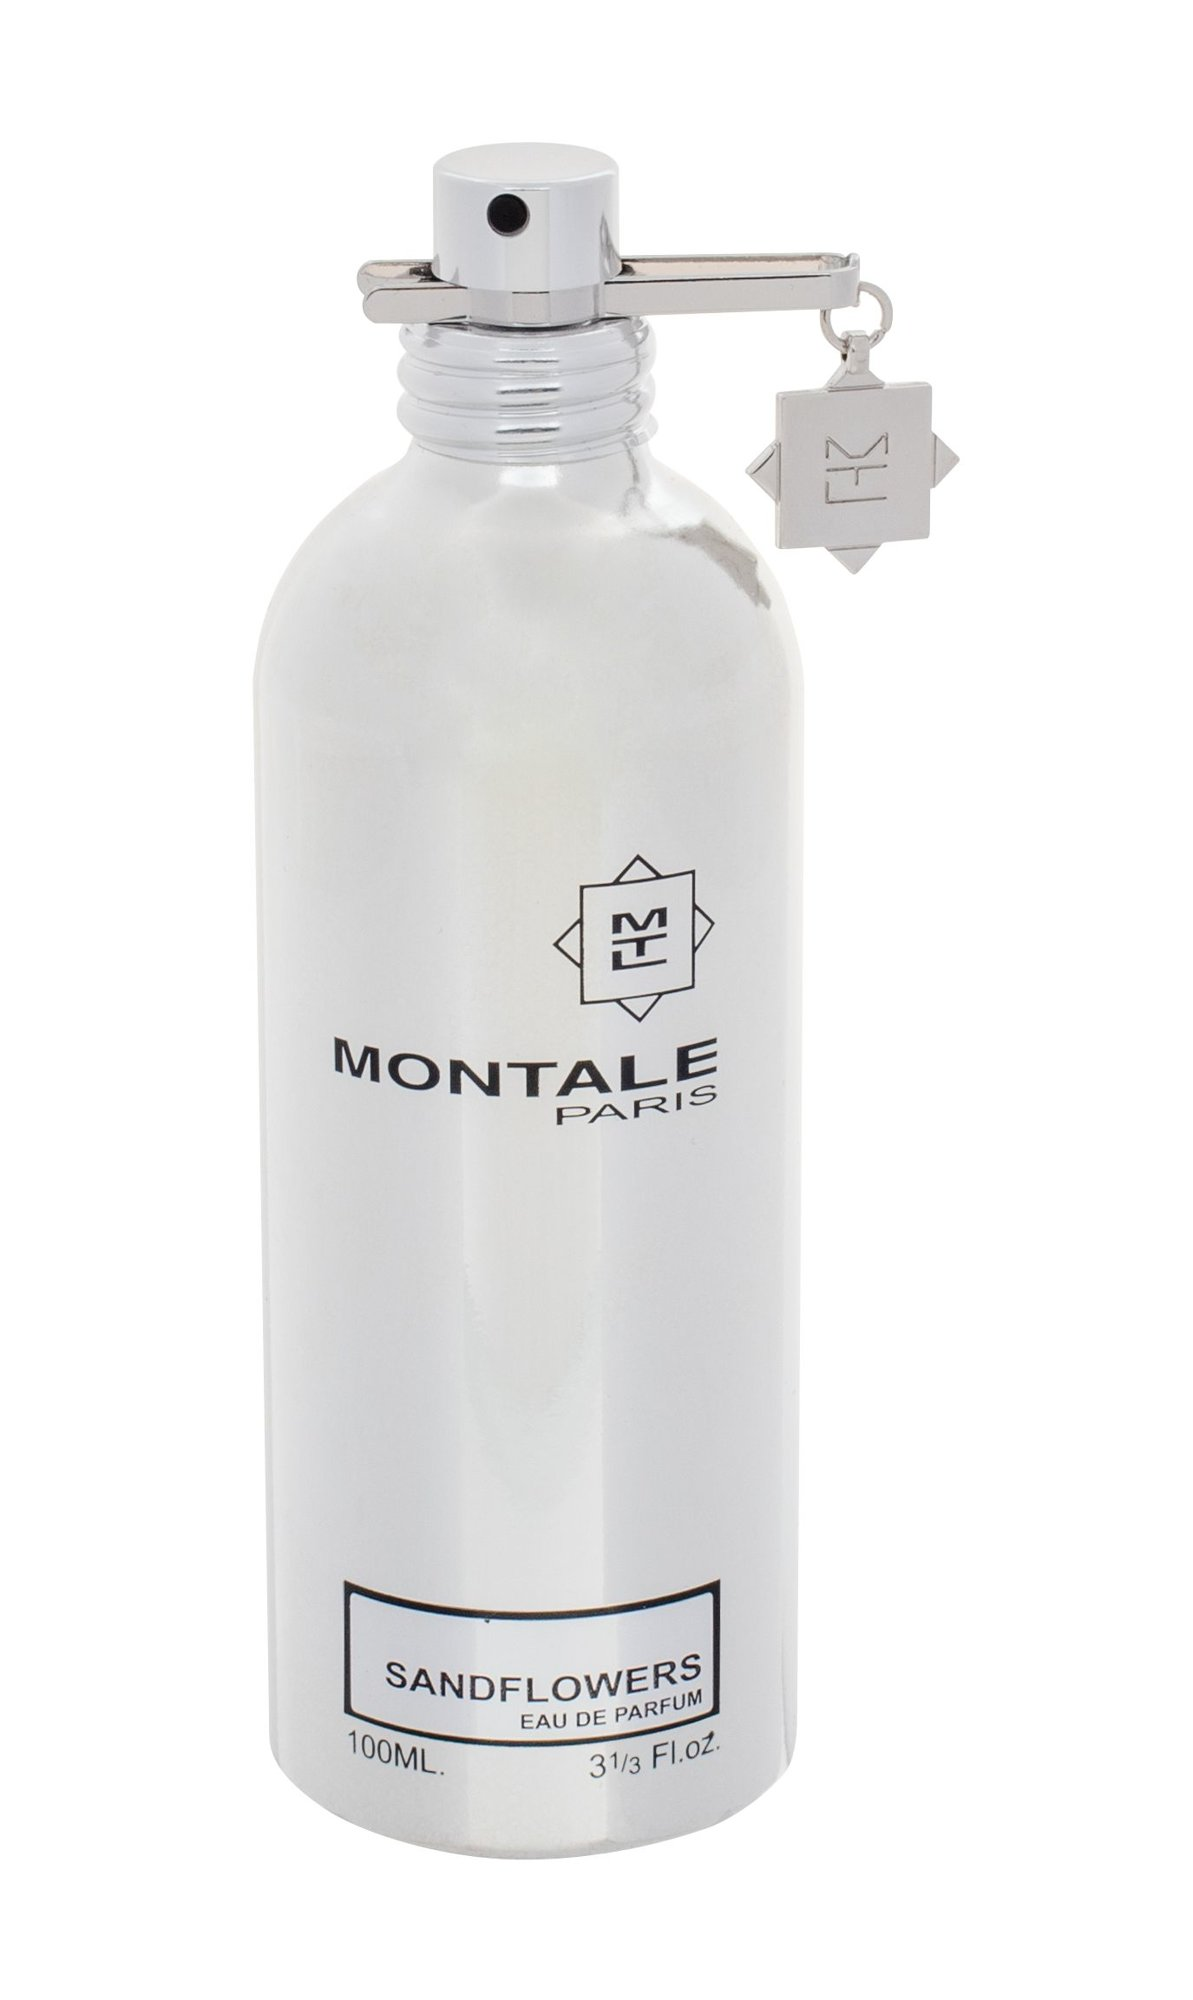 Montale Paris Sandflowers Eau de Parfum 100ml